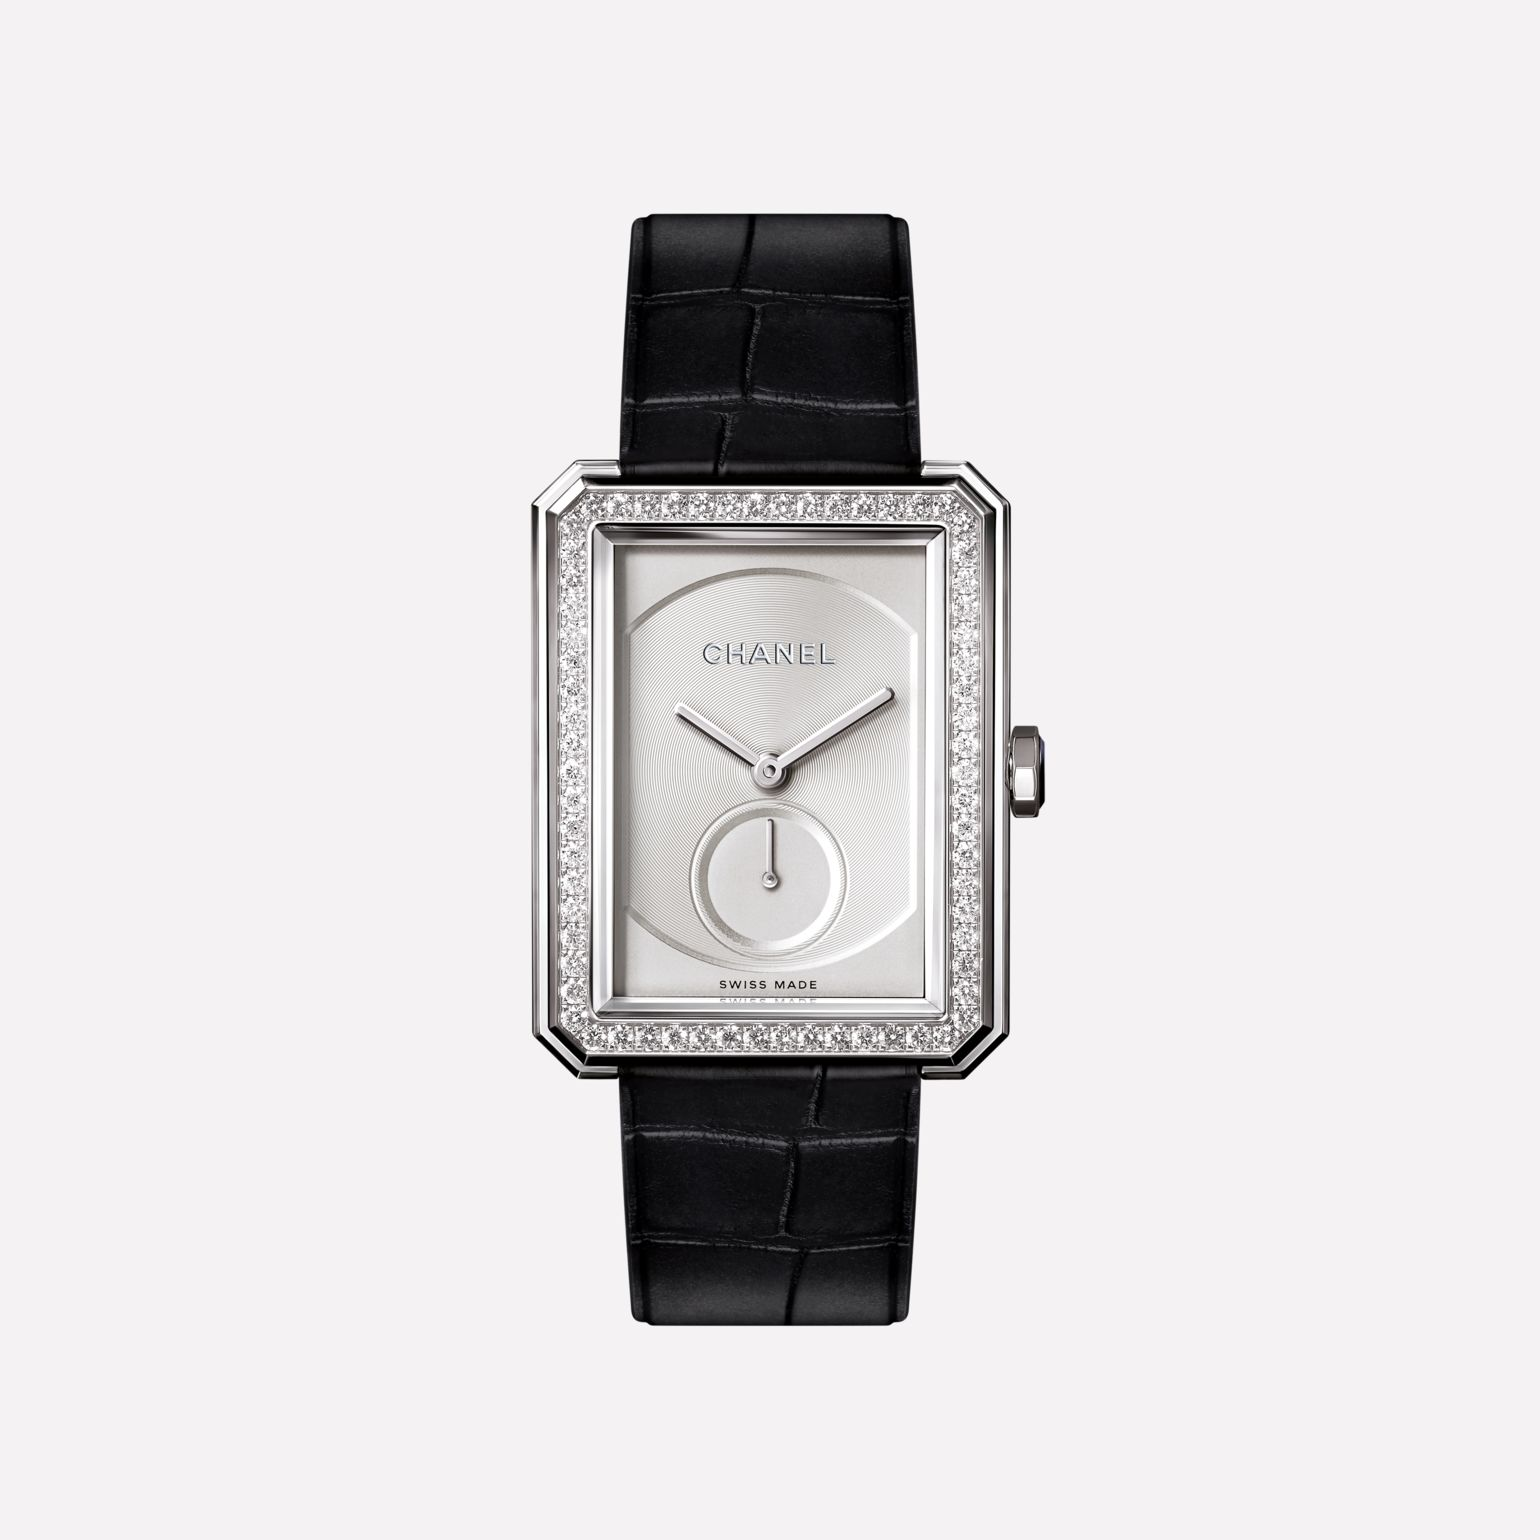 BOY·FRIEND Watch Large version, white gold set with diamonds and alligator strap